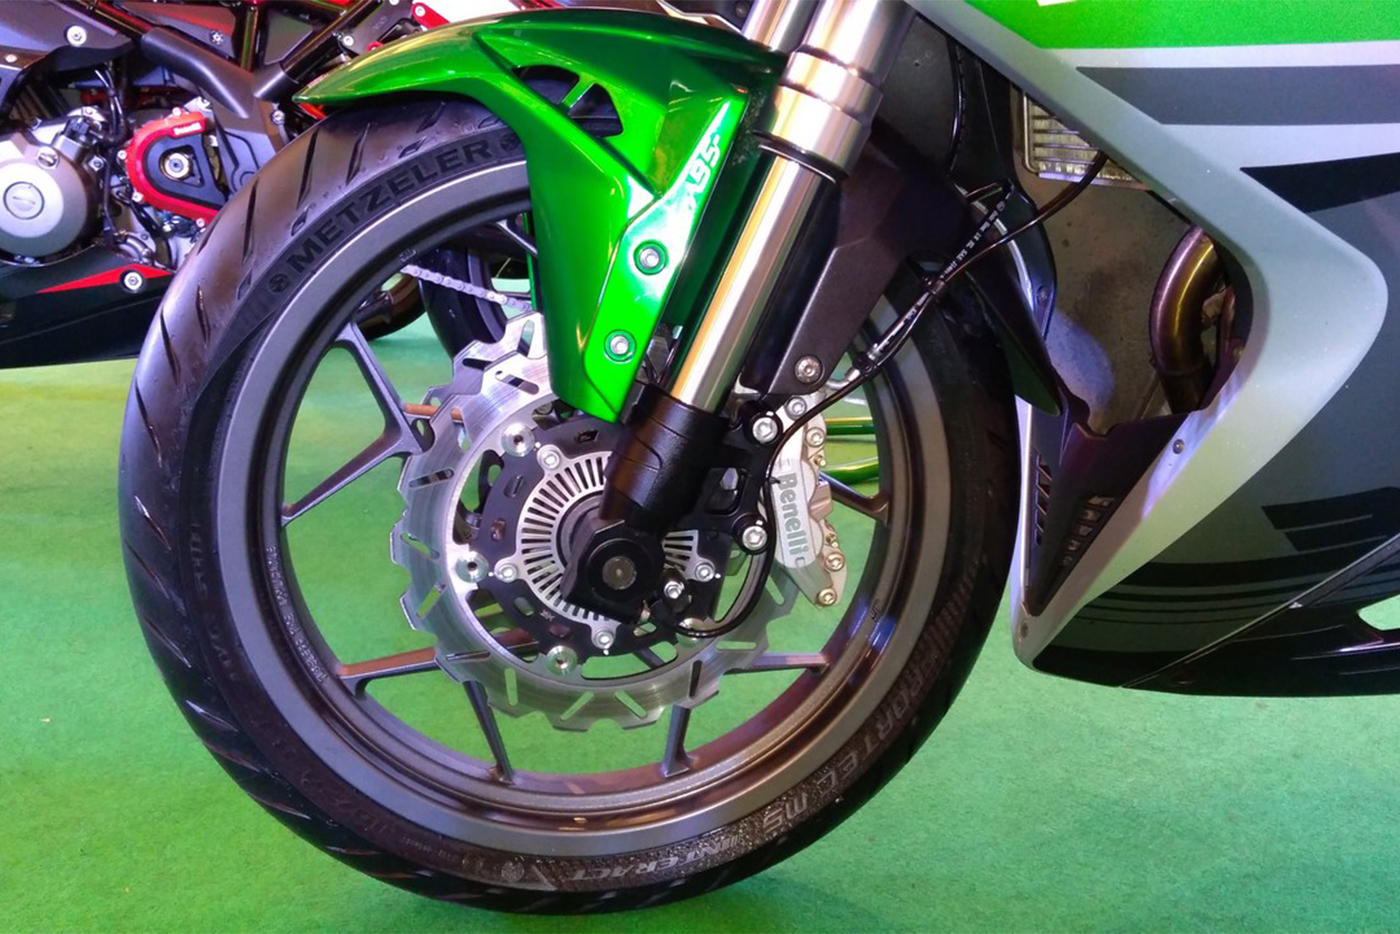 dsk-benelli-302r-front-wheel-side-view-indian-launch.jpg